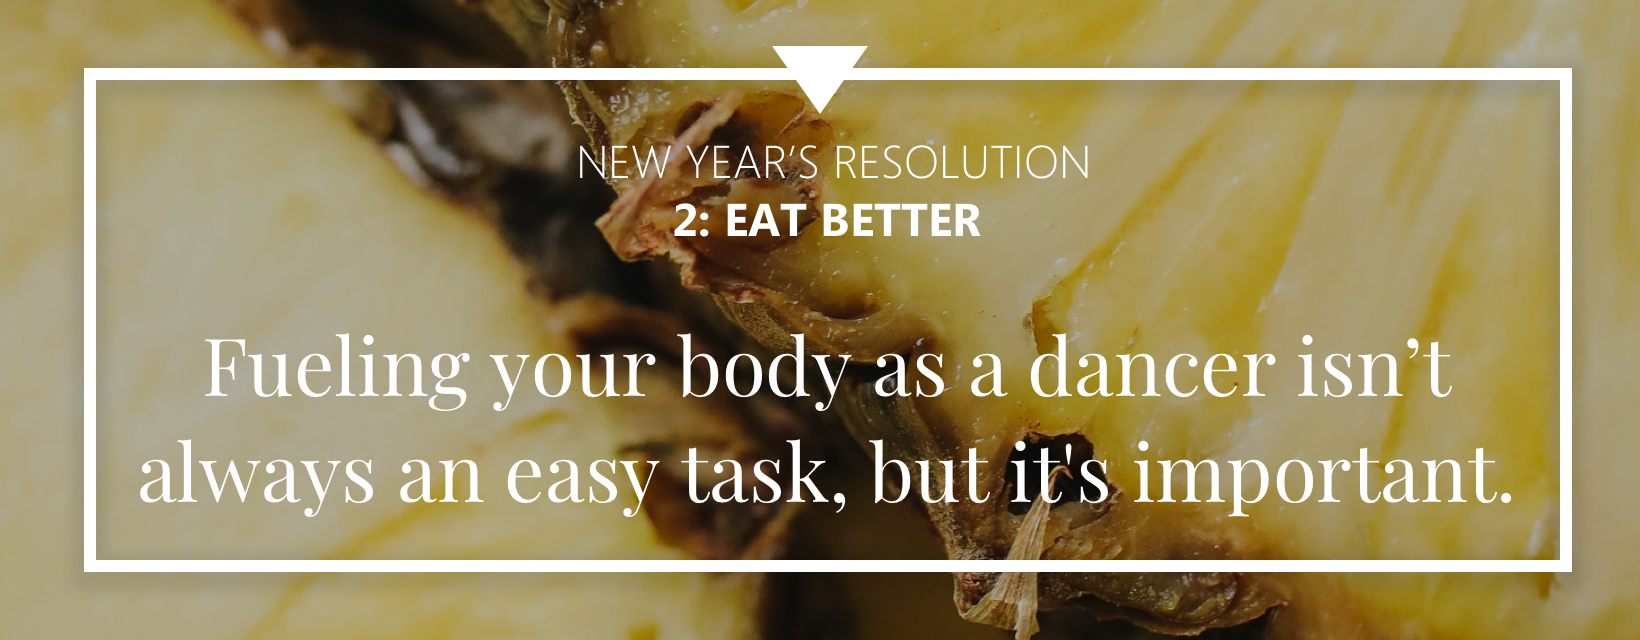 New Year's resolutions for dancers N2: Eat Better Dance nutrition